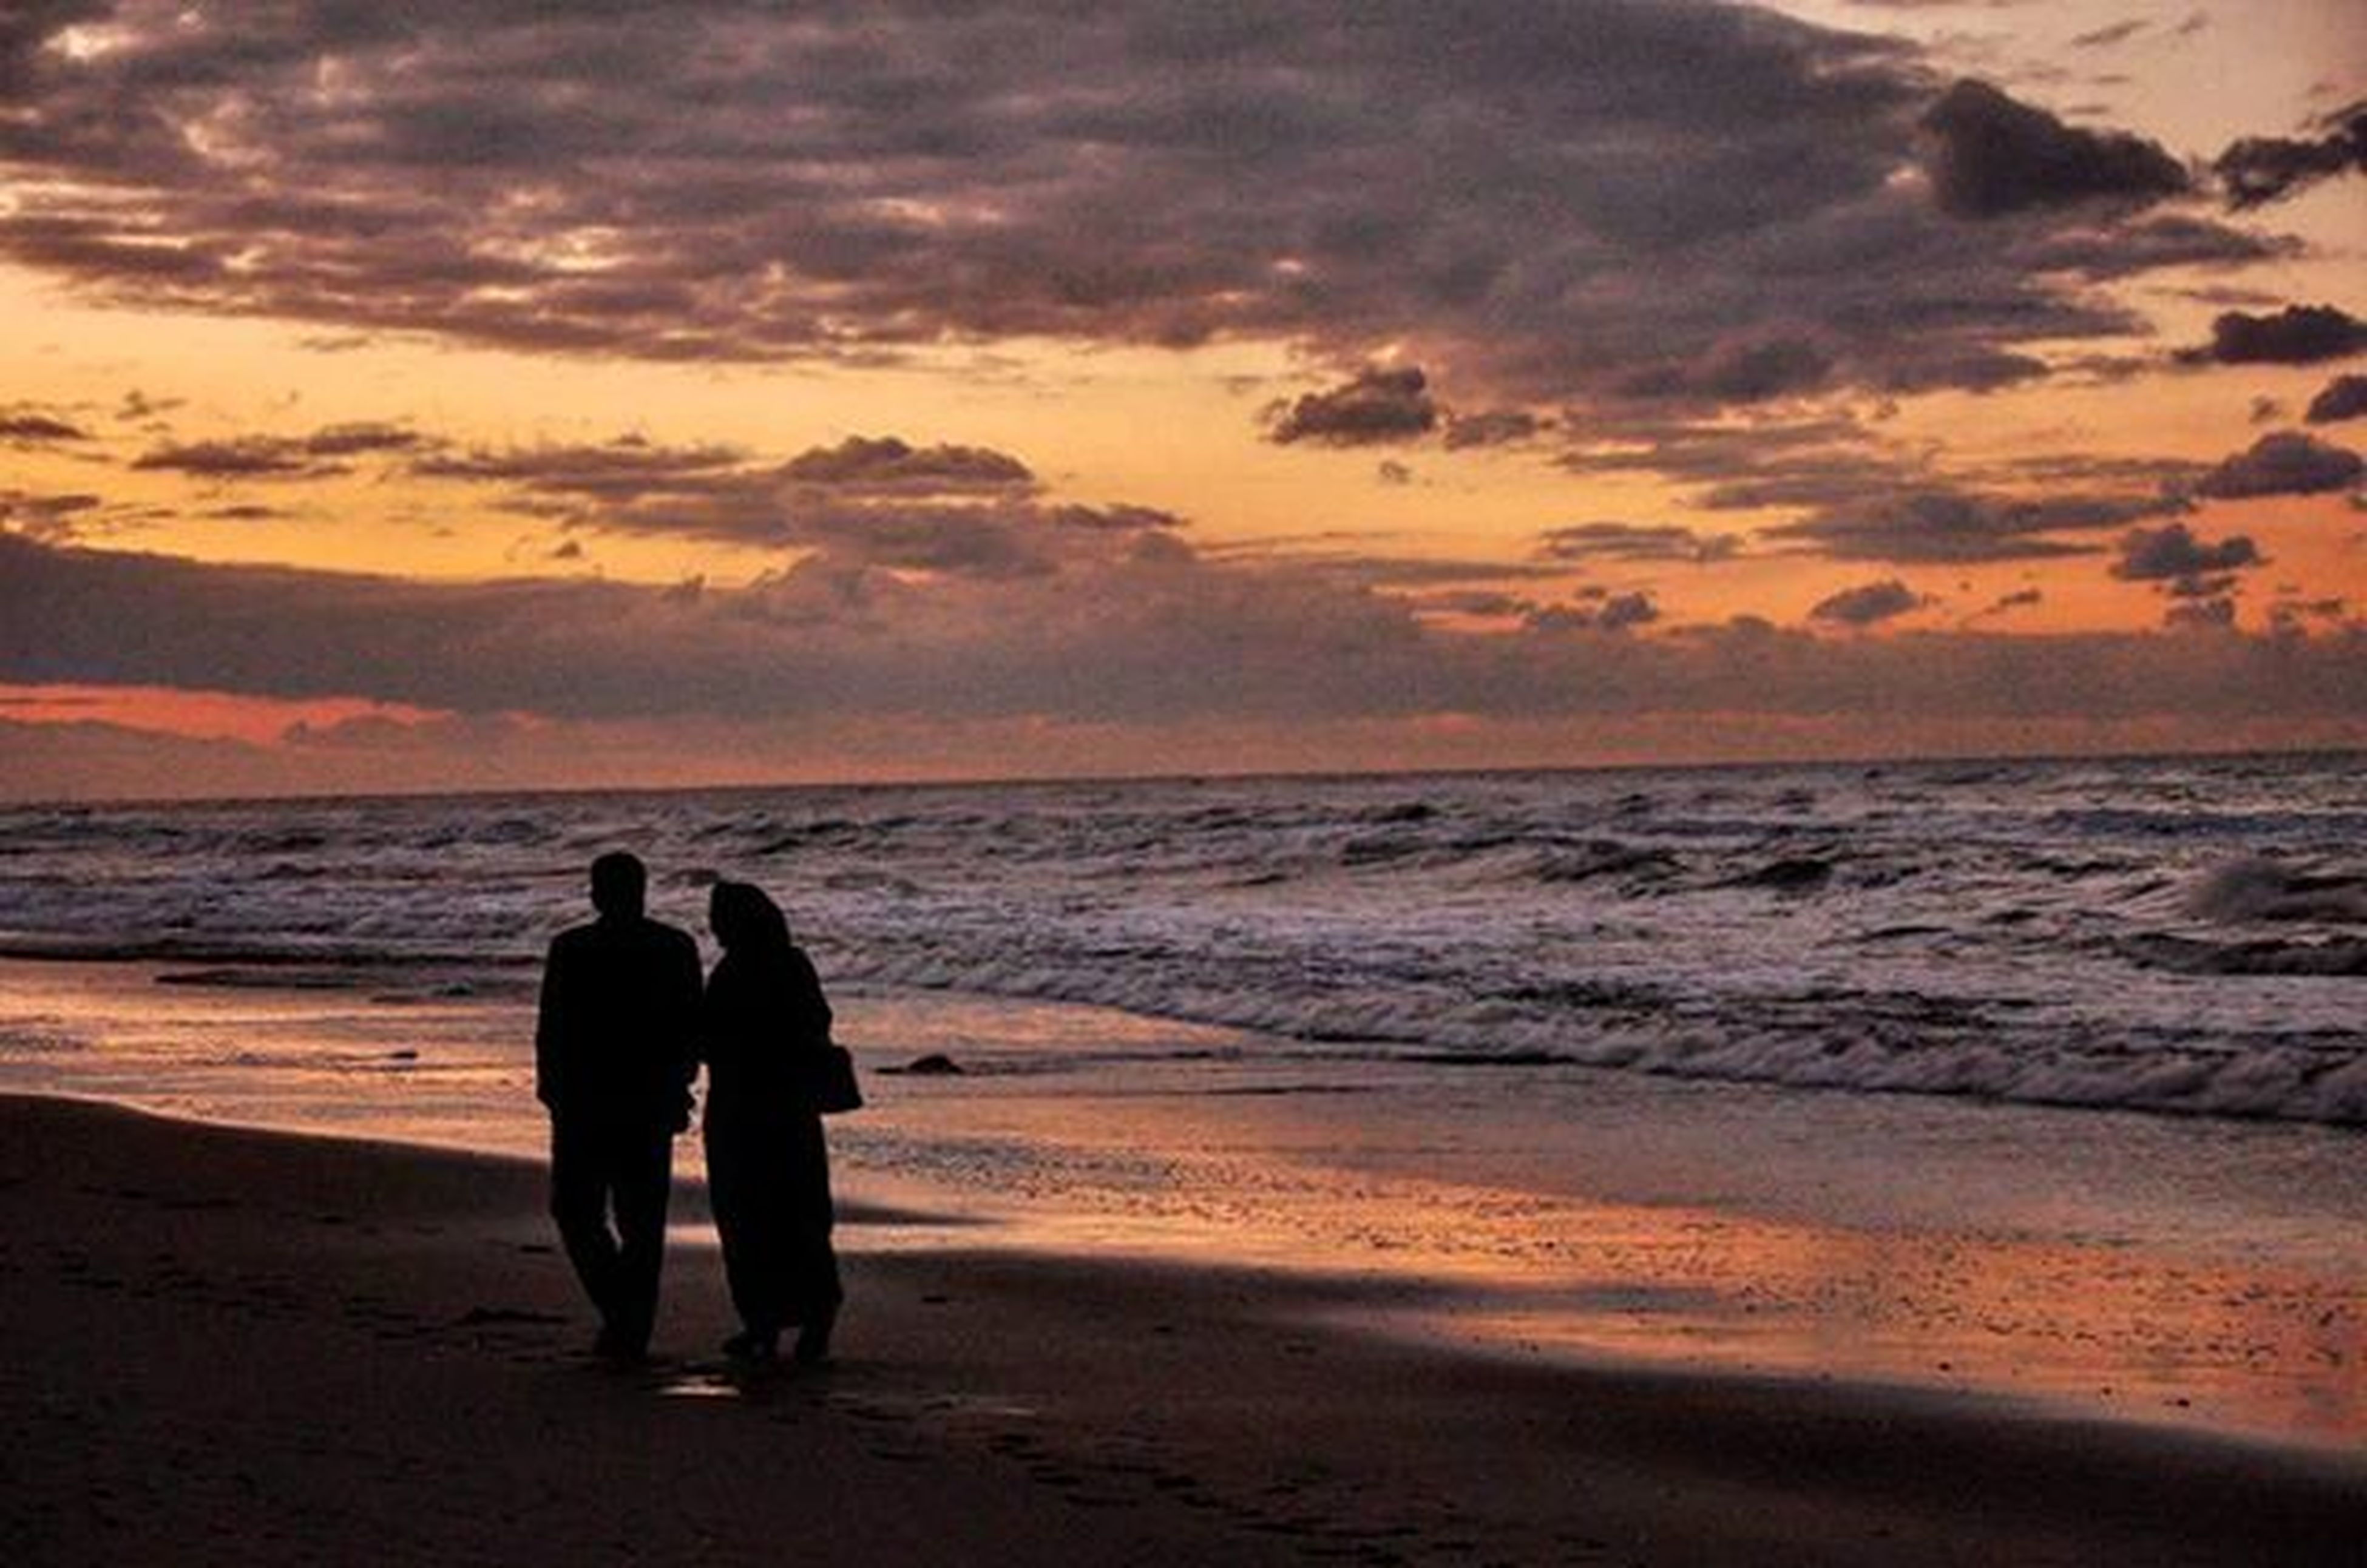 sunset, sea, beach, horizon over water, water, silhouette, sky, shore, scenics, lifestyles, orange color, leisure activity, beauty in nature, men, vacations, cloud - sky, togetherness, tranquil scene